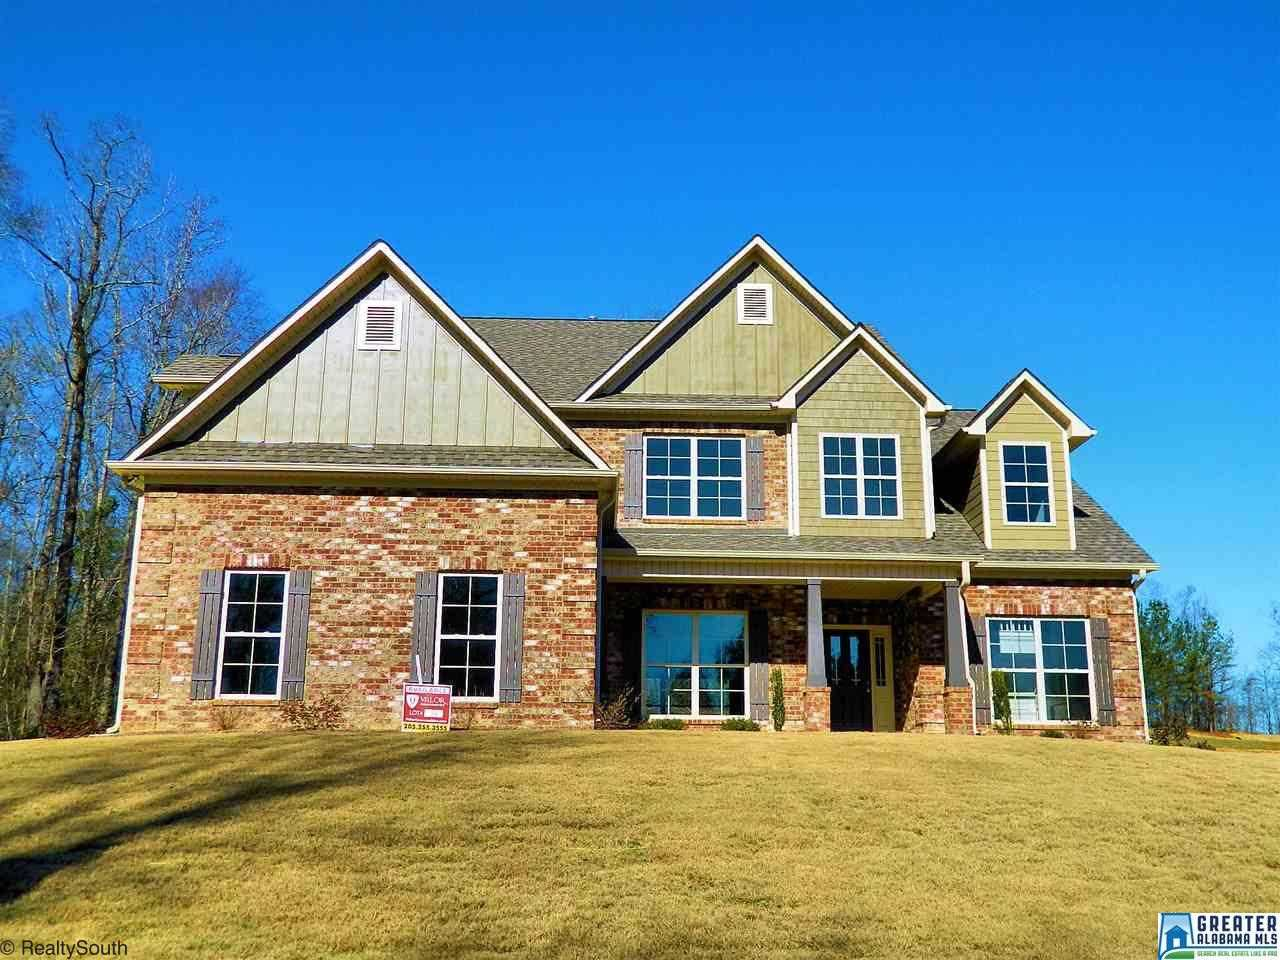 6354 Carroll Cove Ln, Mc Calla, AL - USA (photo 1)